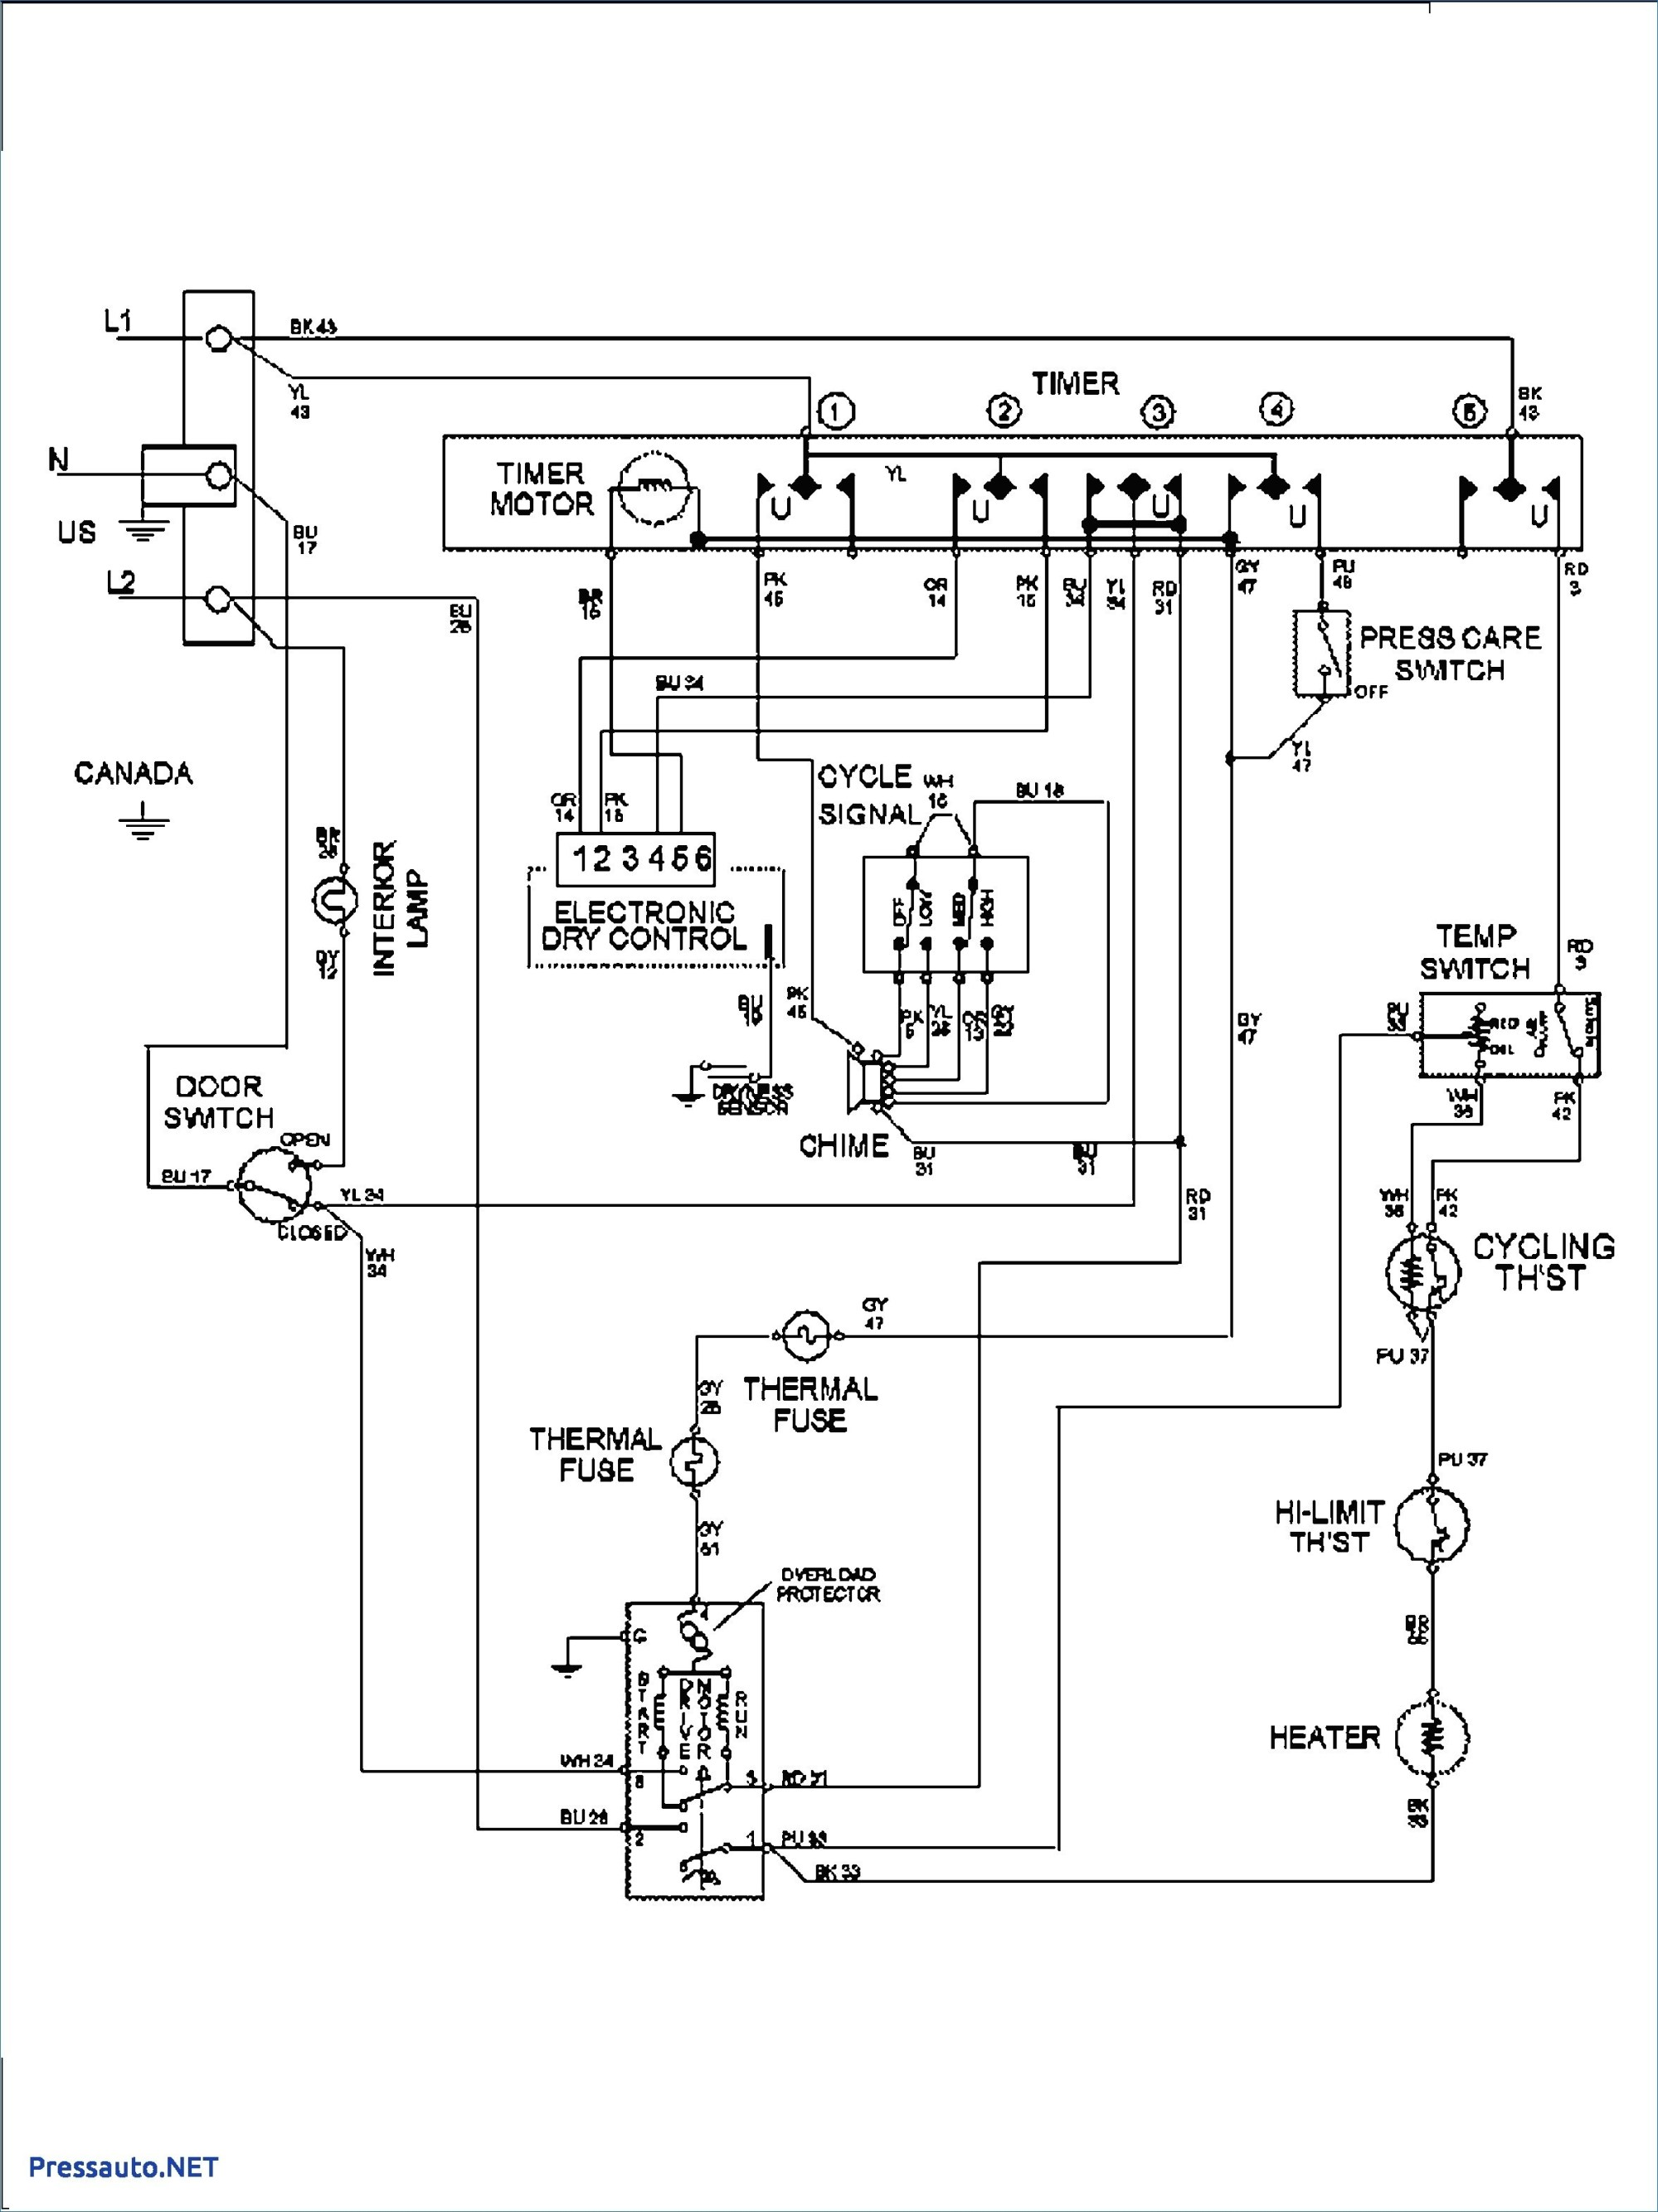 hight resolution of maytag wall oven wiring diagram wiring diagrams konsult maytag gemini double oven wiring diagram maytag oven wiring